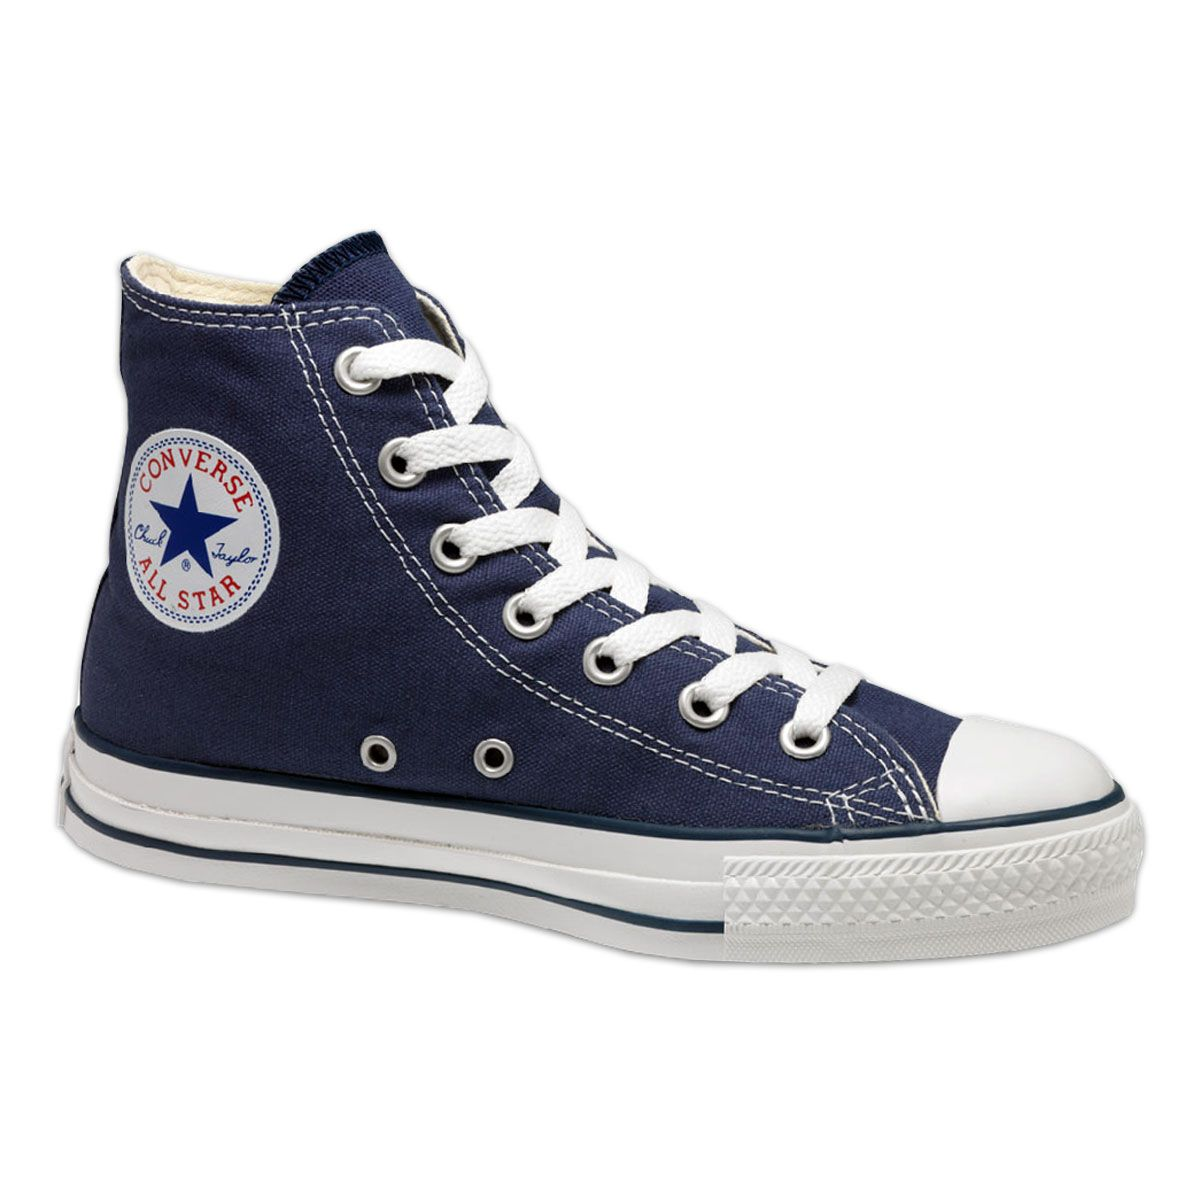 All Star Core Hi - Navy